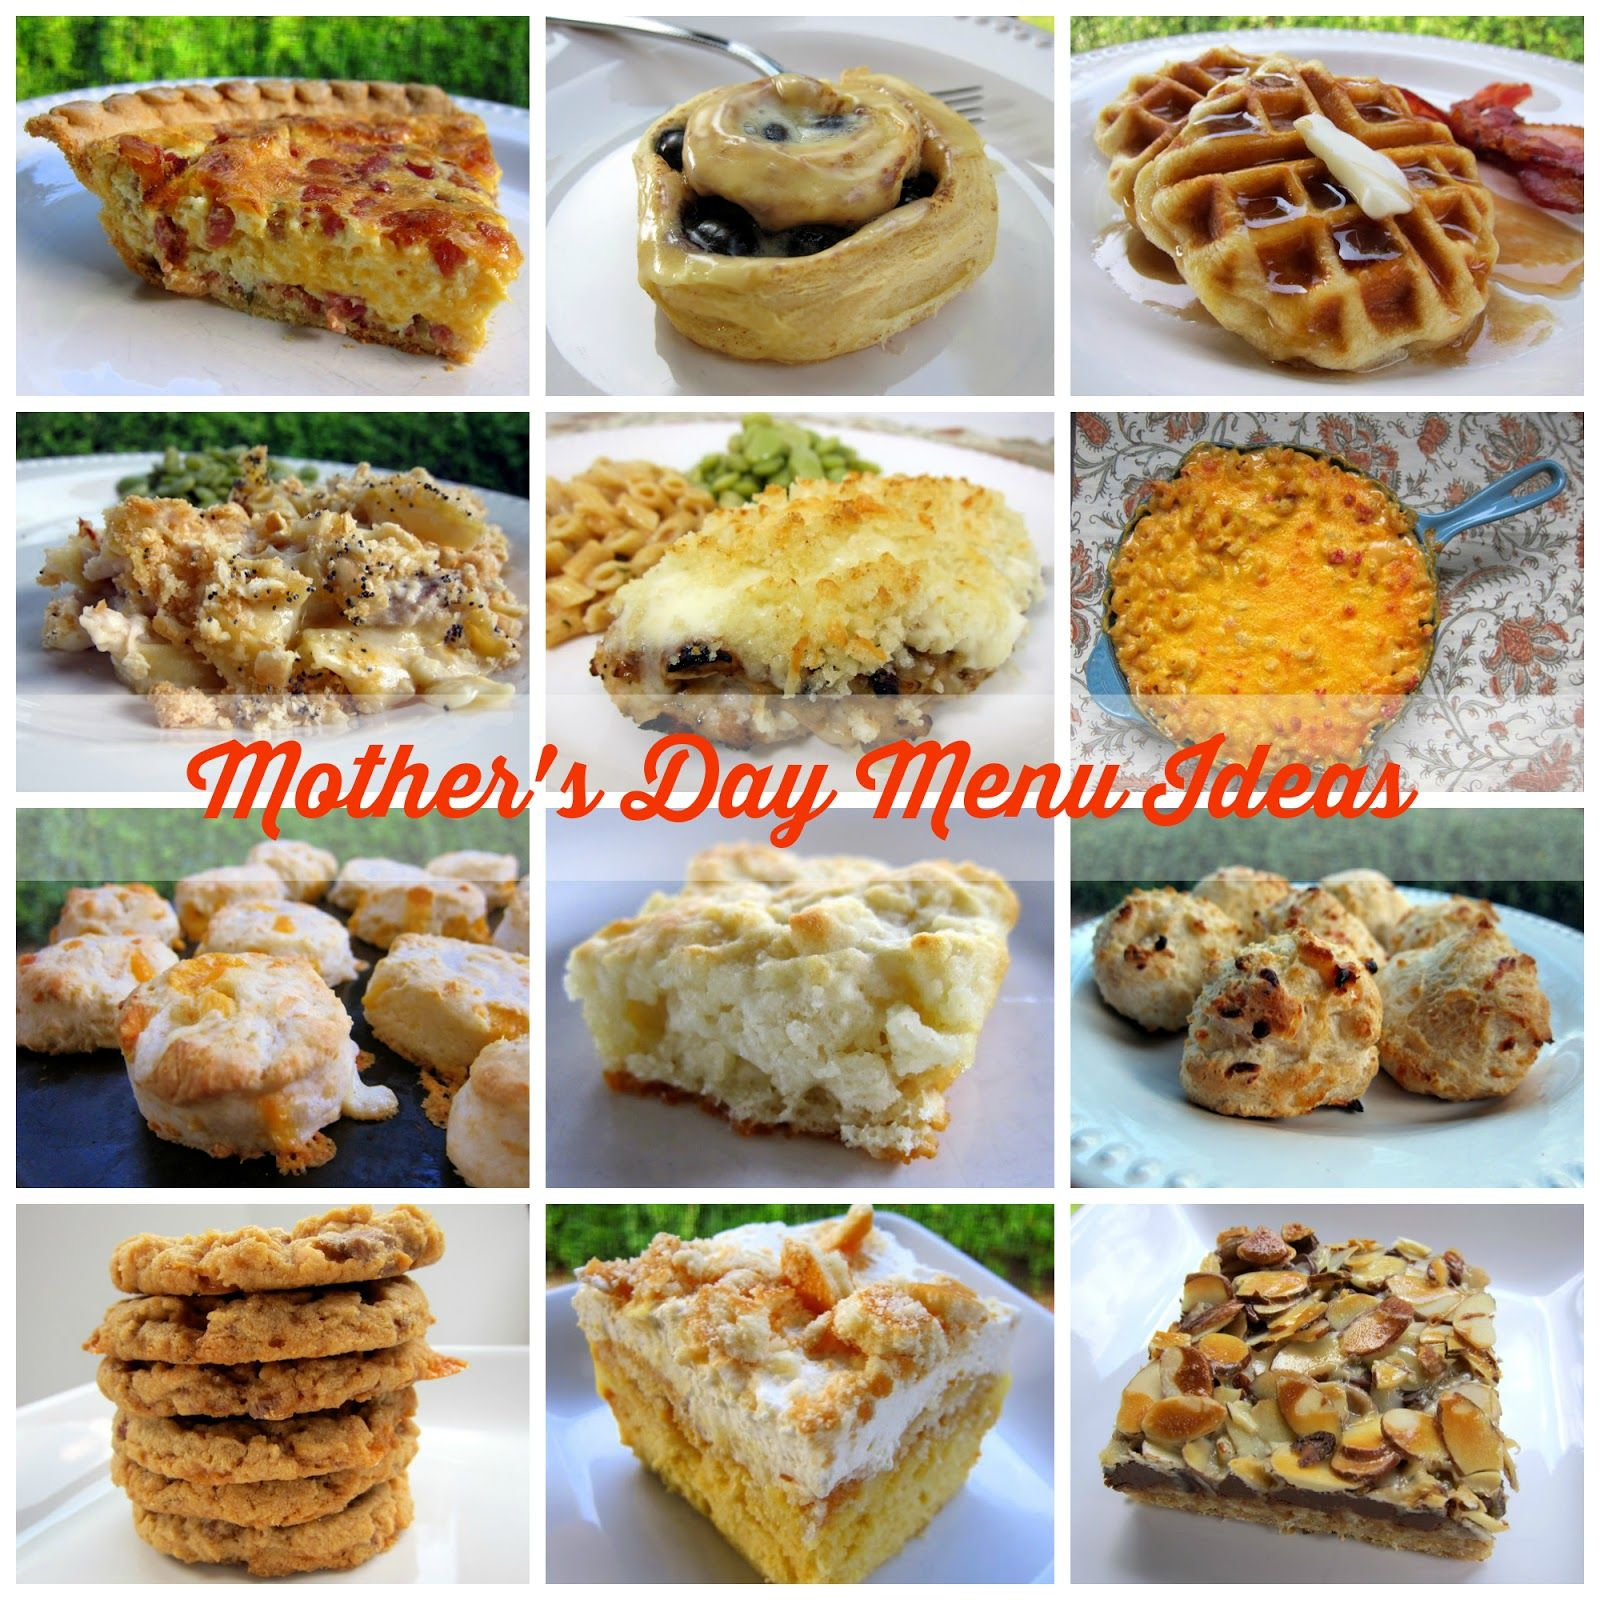 recipes to treat mom on her special day! recipes for breakfast